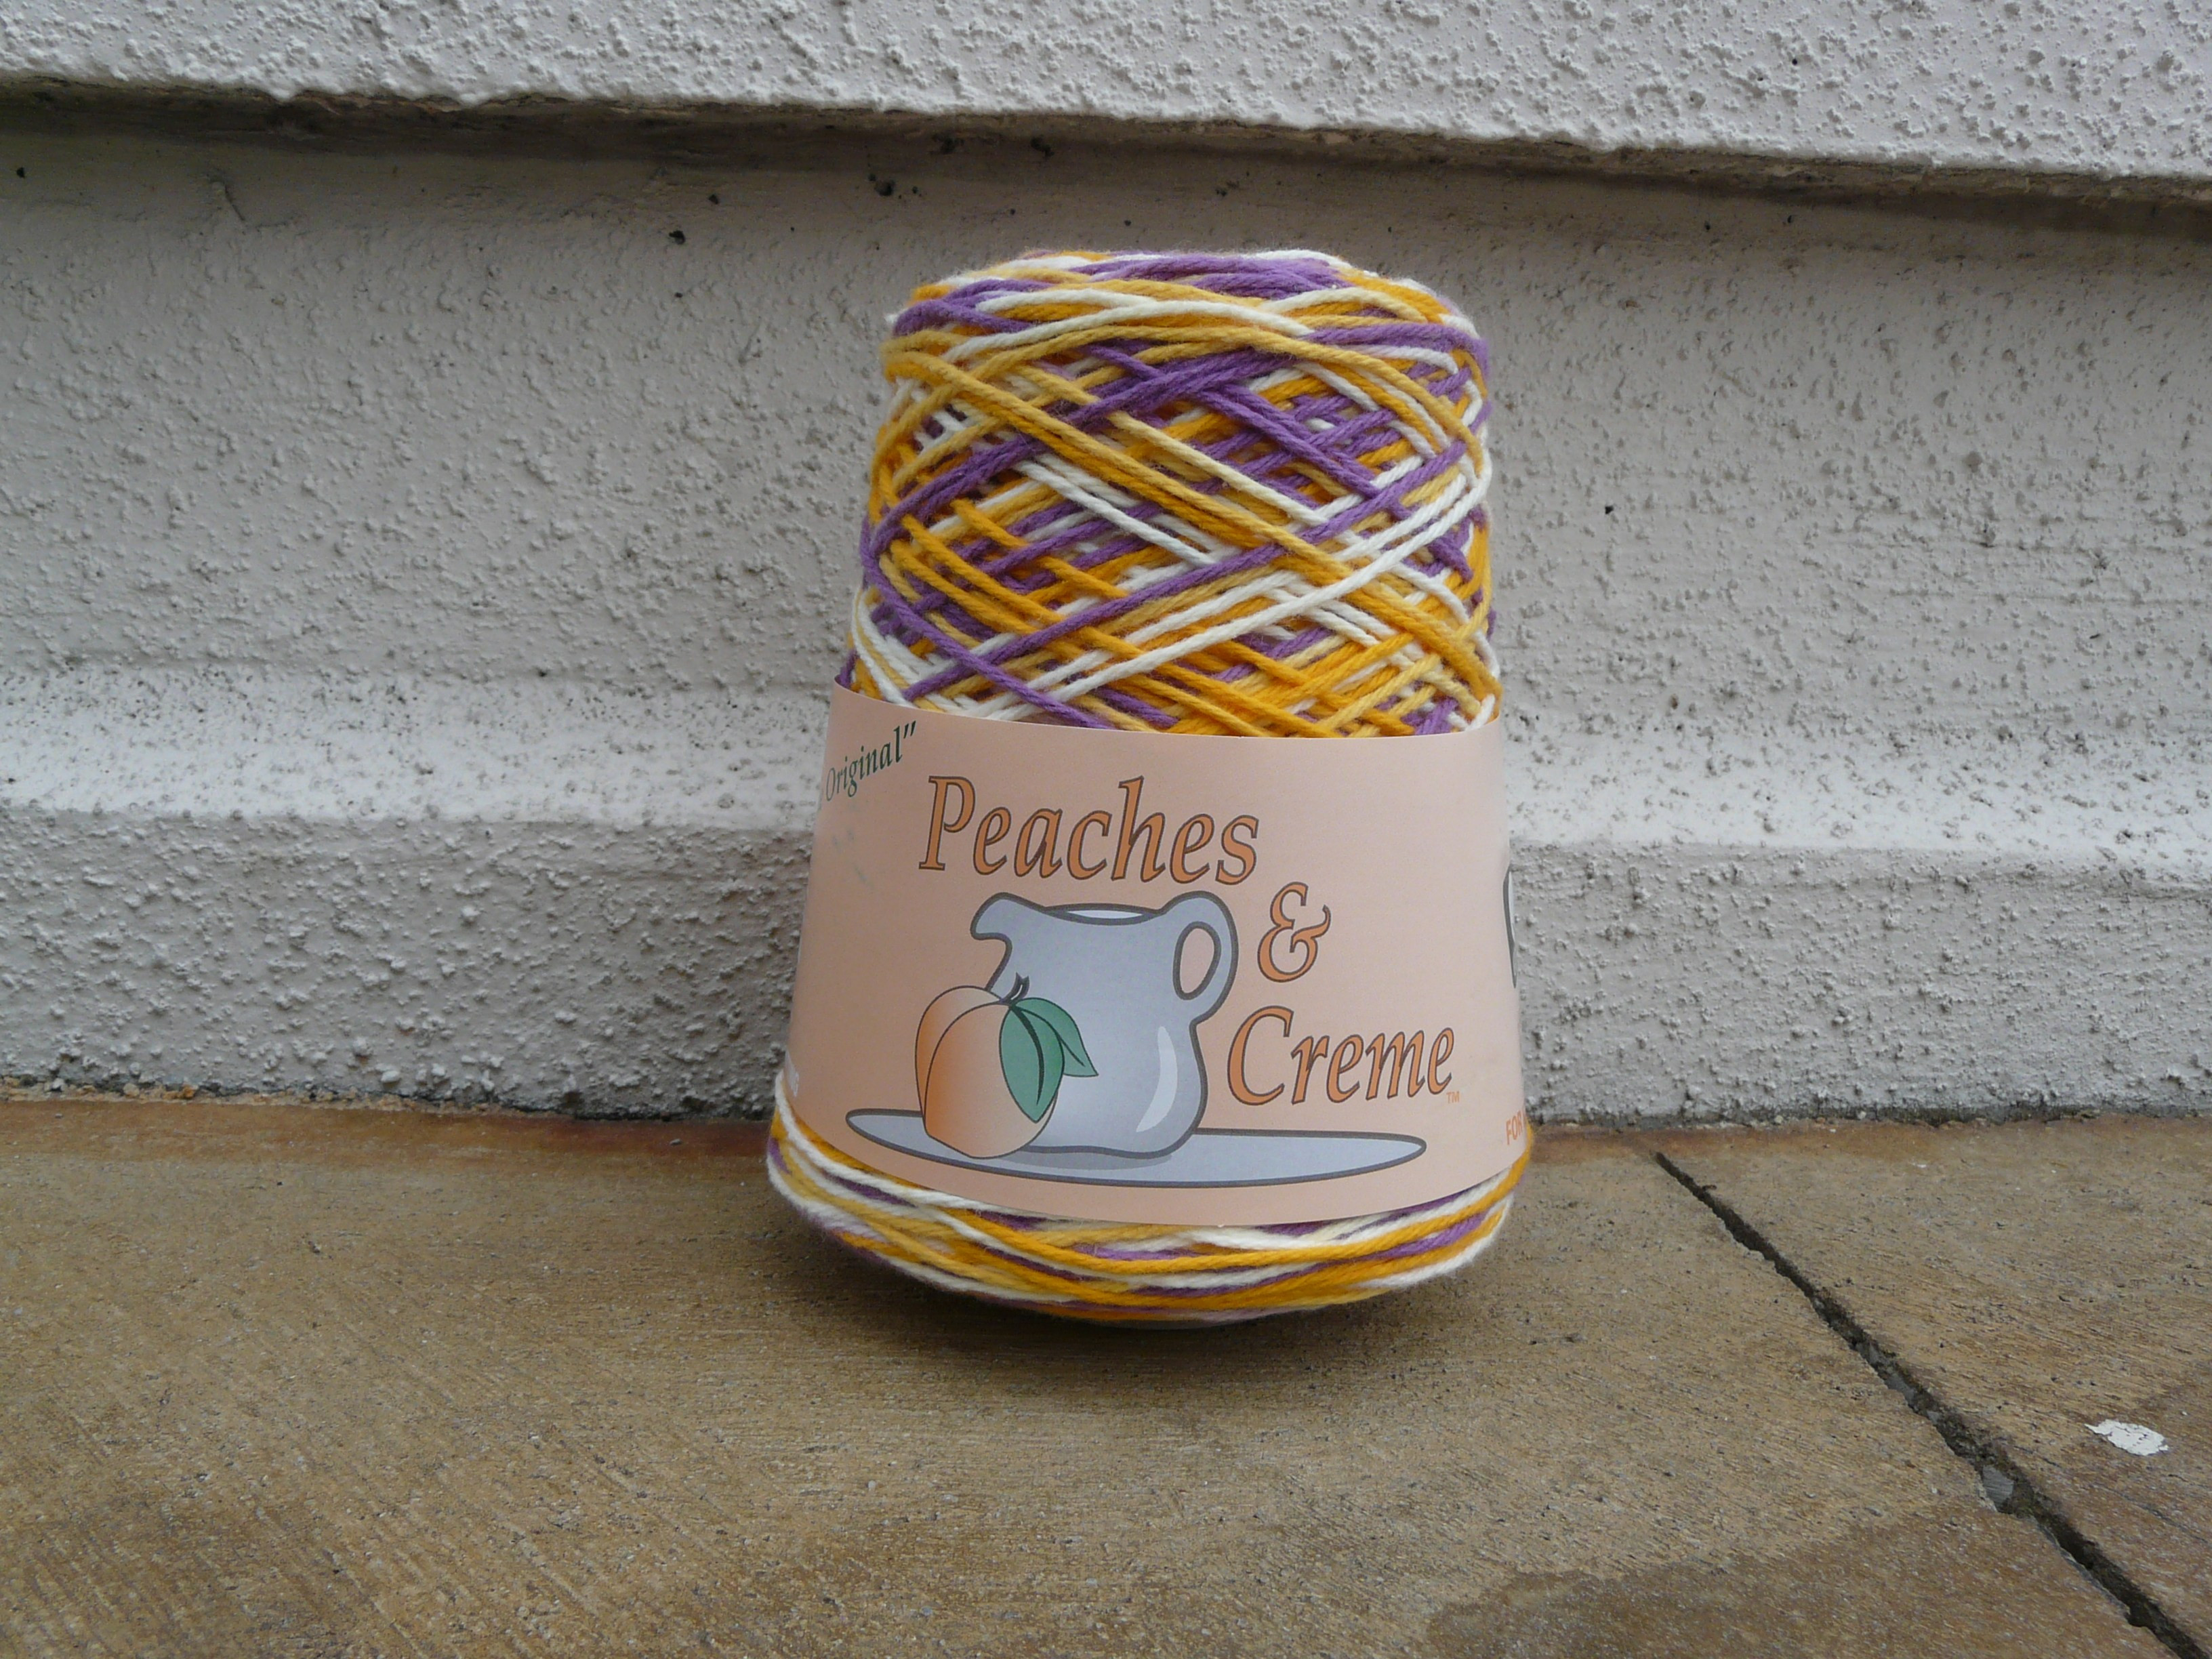 Peaches and Cream Yarn Website Luxury Old fort Archives Crochetbug Of Wonderful 47 Models Peaches and Cream Yarn Website